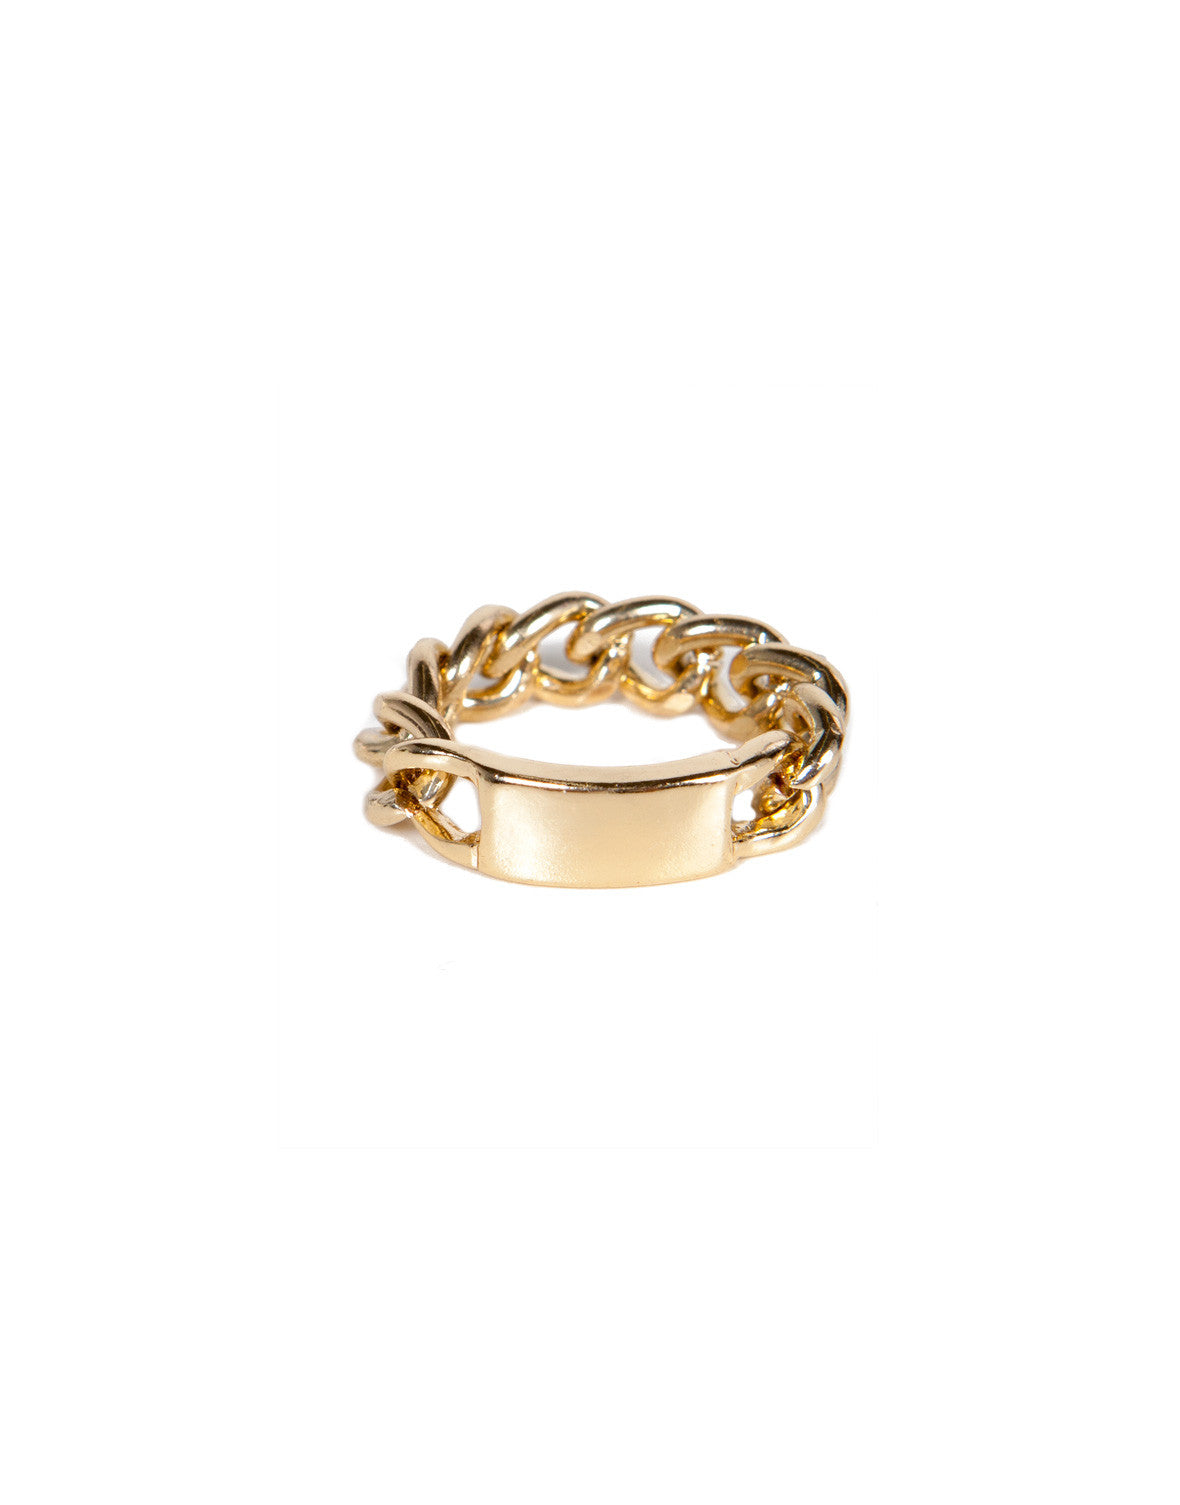 Name Chain Ring